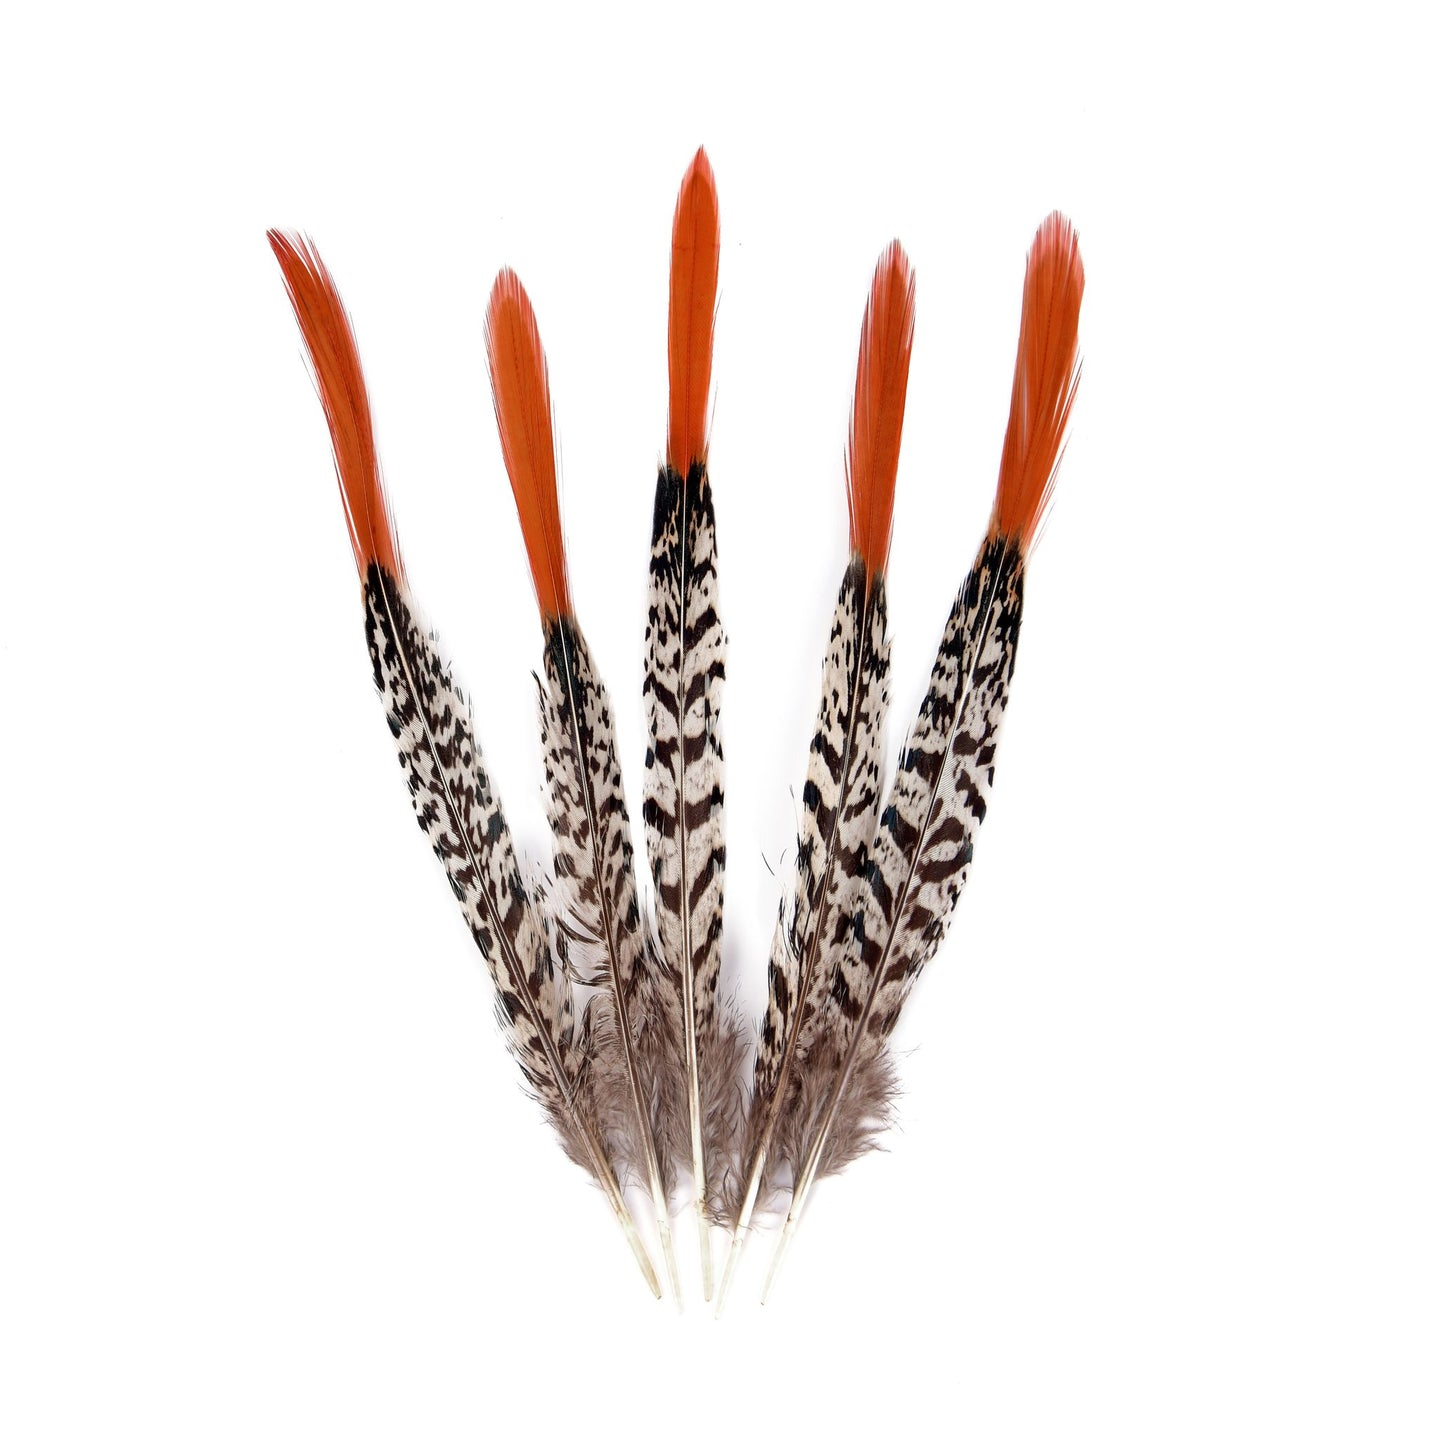 Burnt Orange Tip Pheasant Feather for Hats Fascinators and Millinery FE006